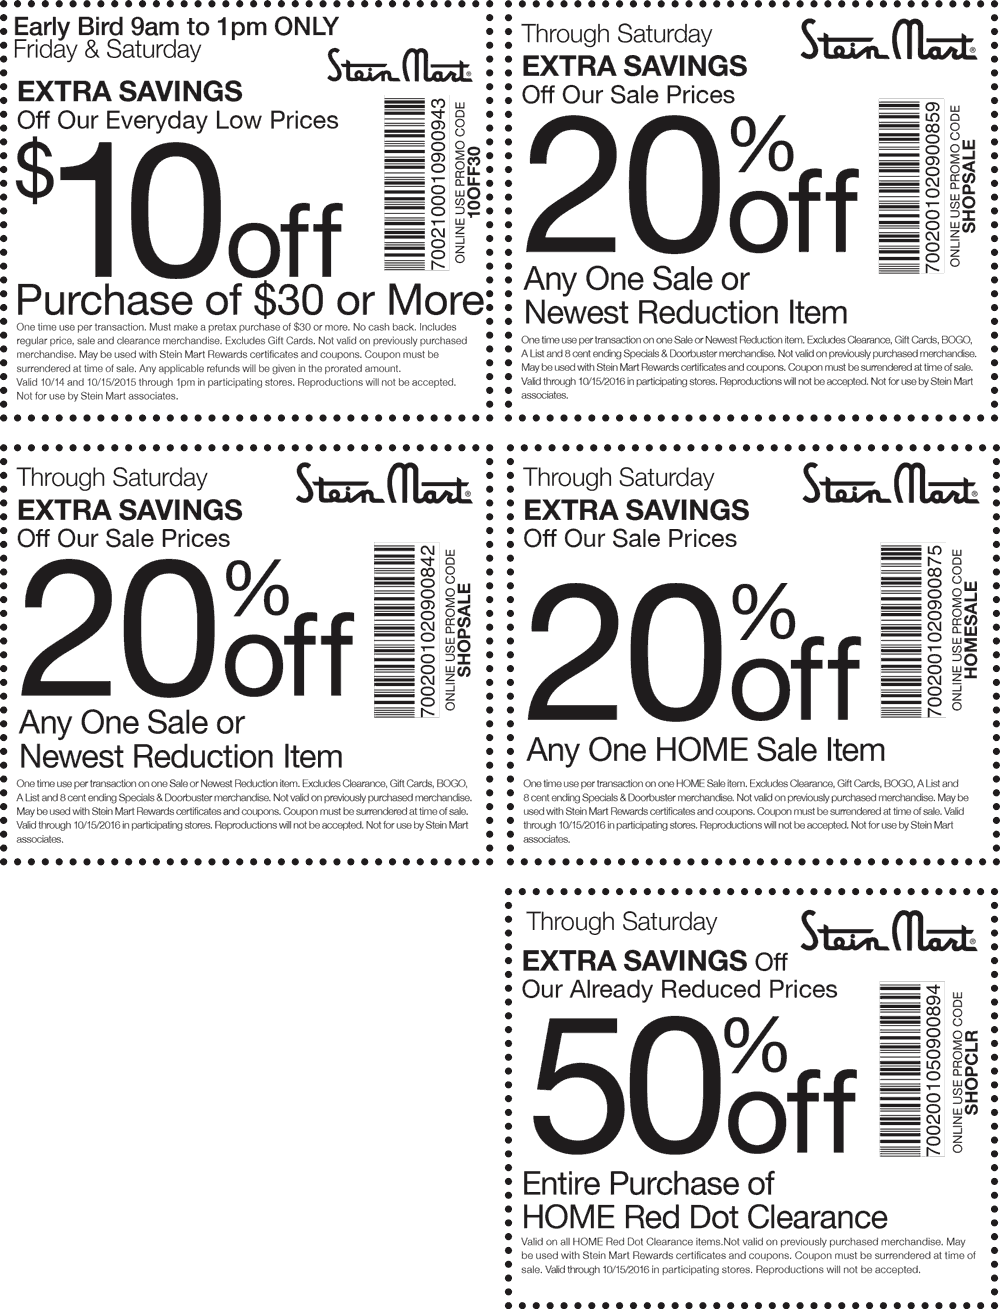 stein mart printable coupons pinned october 14th 10 30 amp more at steinmart or 24980